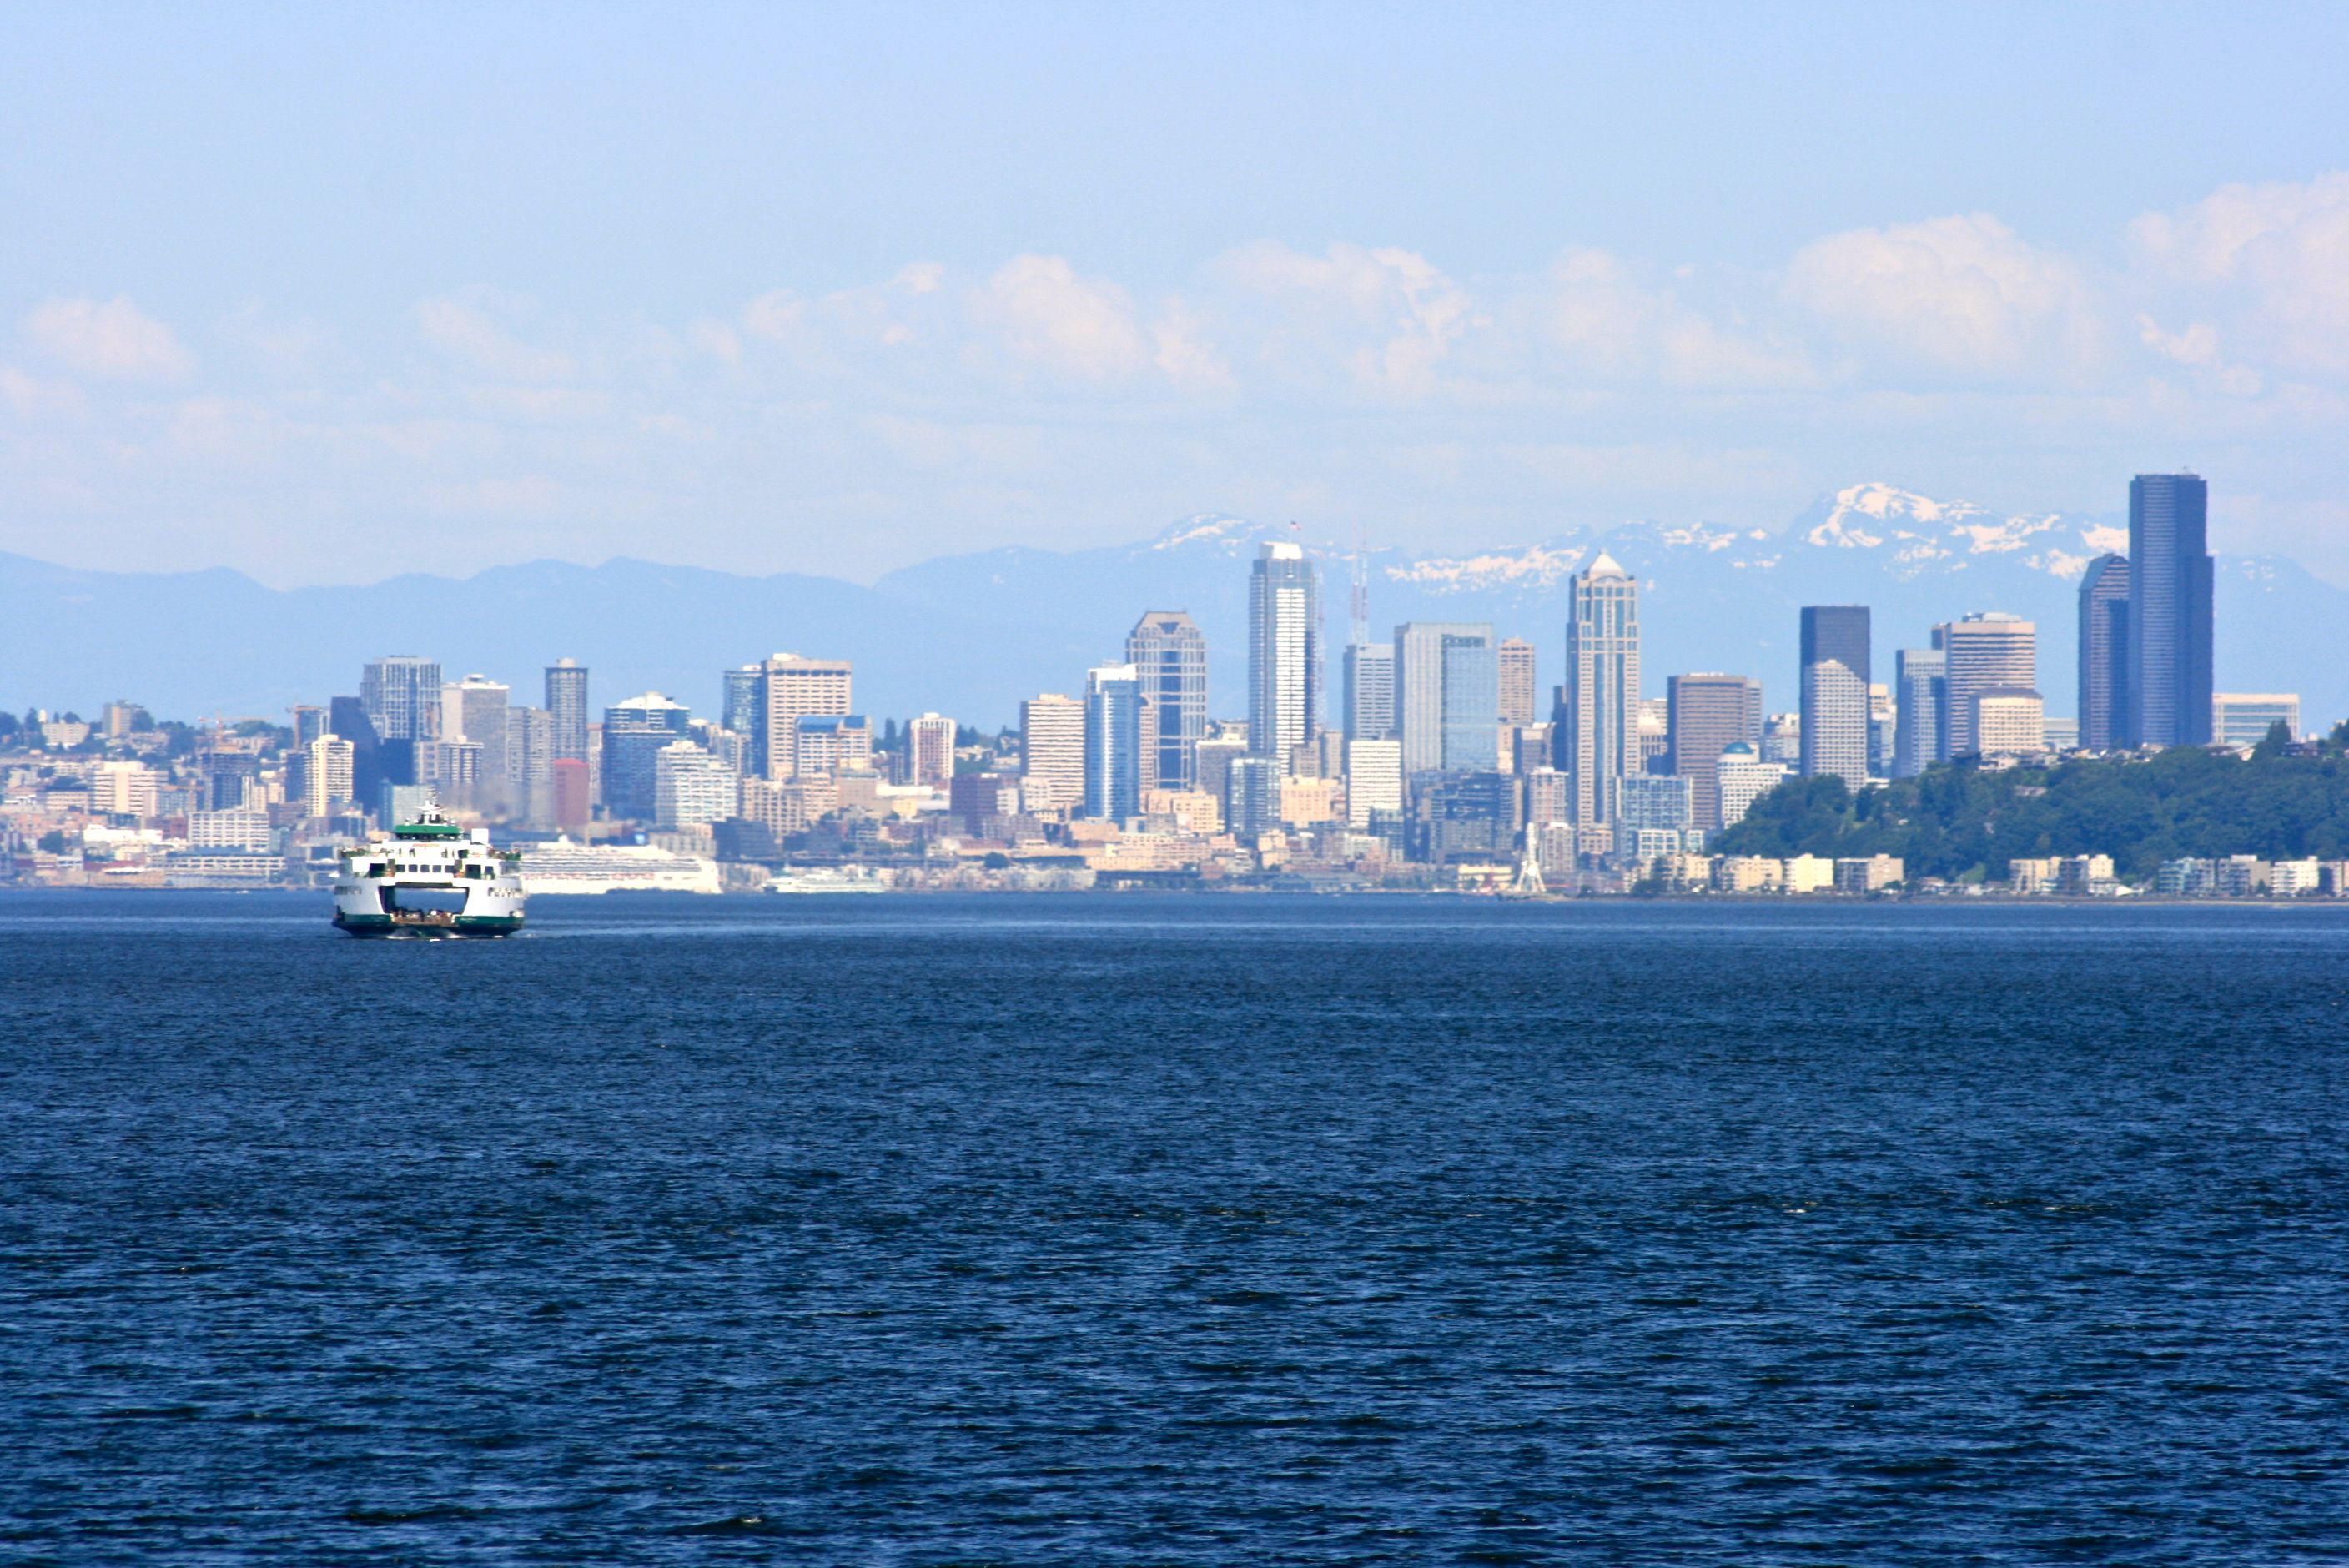 Seattle with the still snowcapped Cascade Mountains in the background 2816x1880